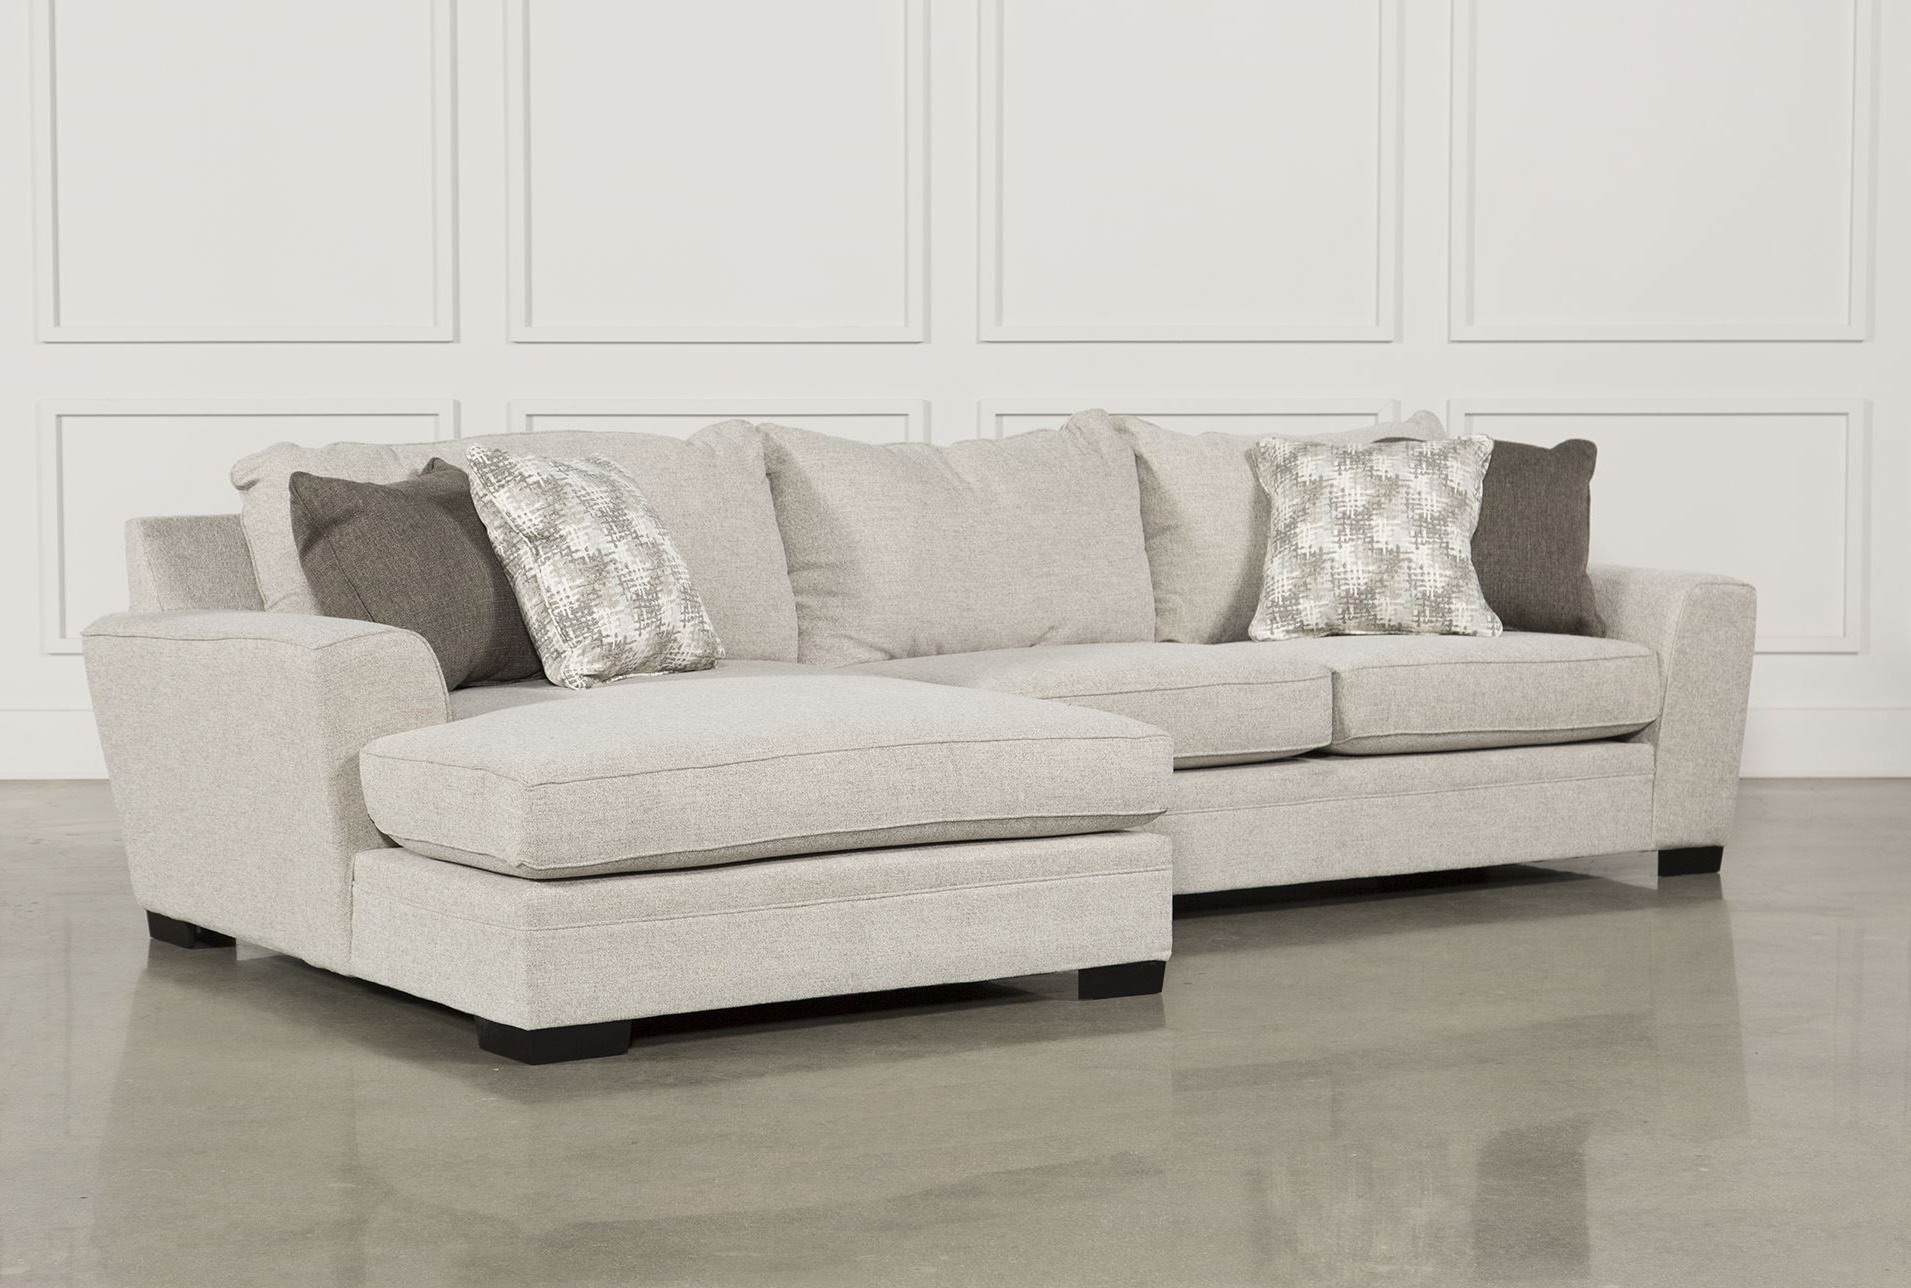 Malbry Point 3 Piece Sectionals With Laf Chaise Intended For Famous Delano 2 Piece Sectional W/raf Oversized Chaise (View 12 of 20)